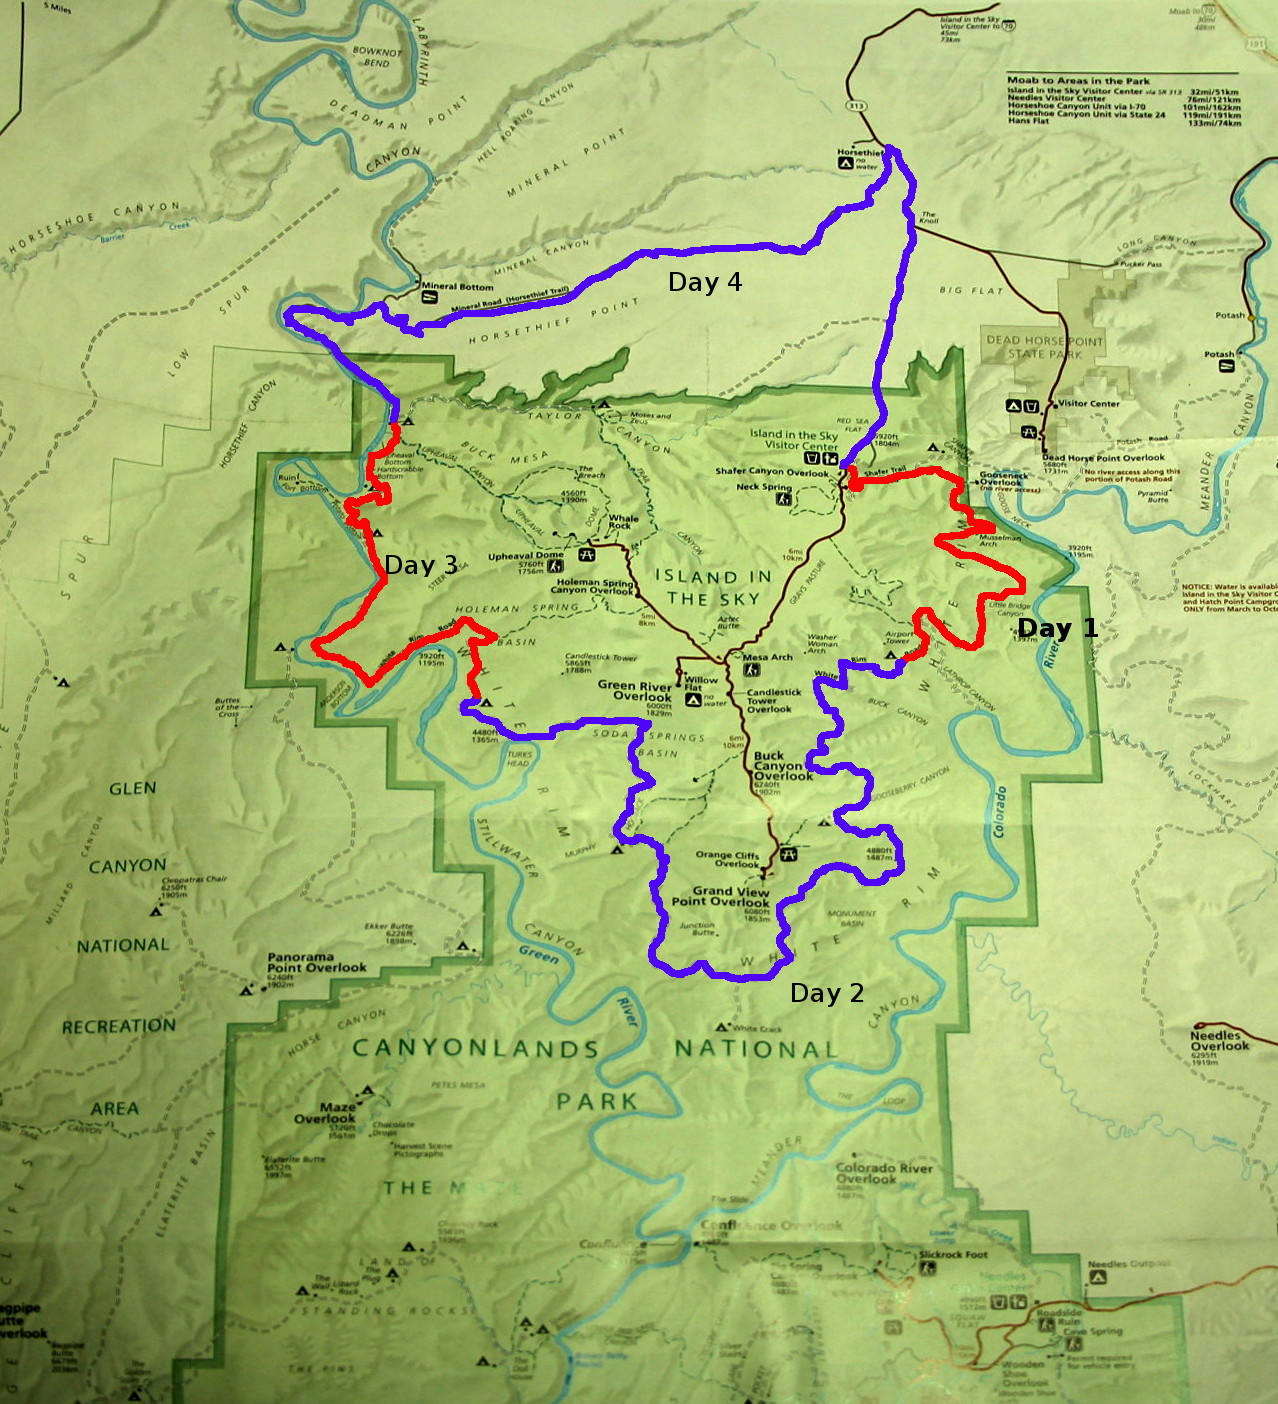 Mountain Biking the White Rim in Canyonlands National Park Voyages